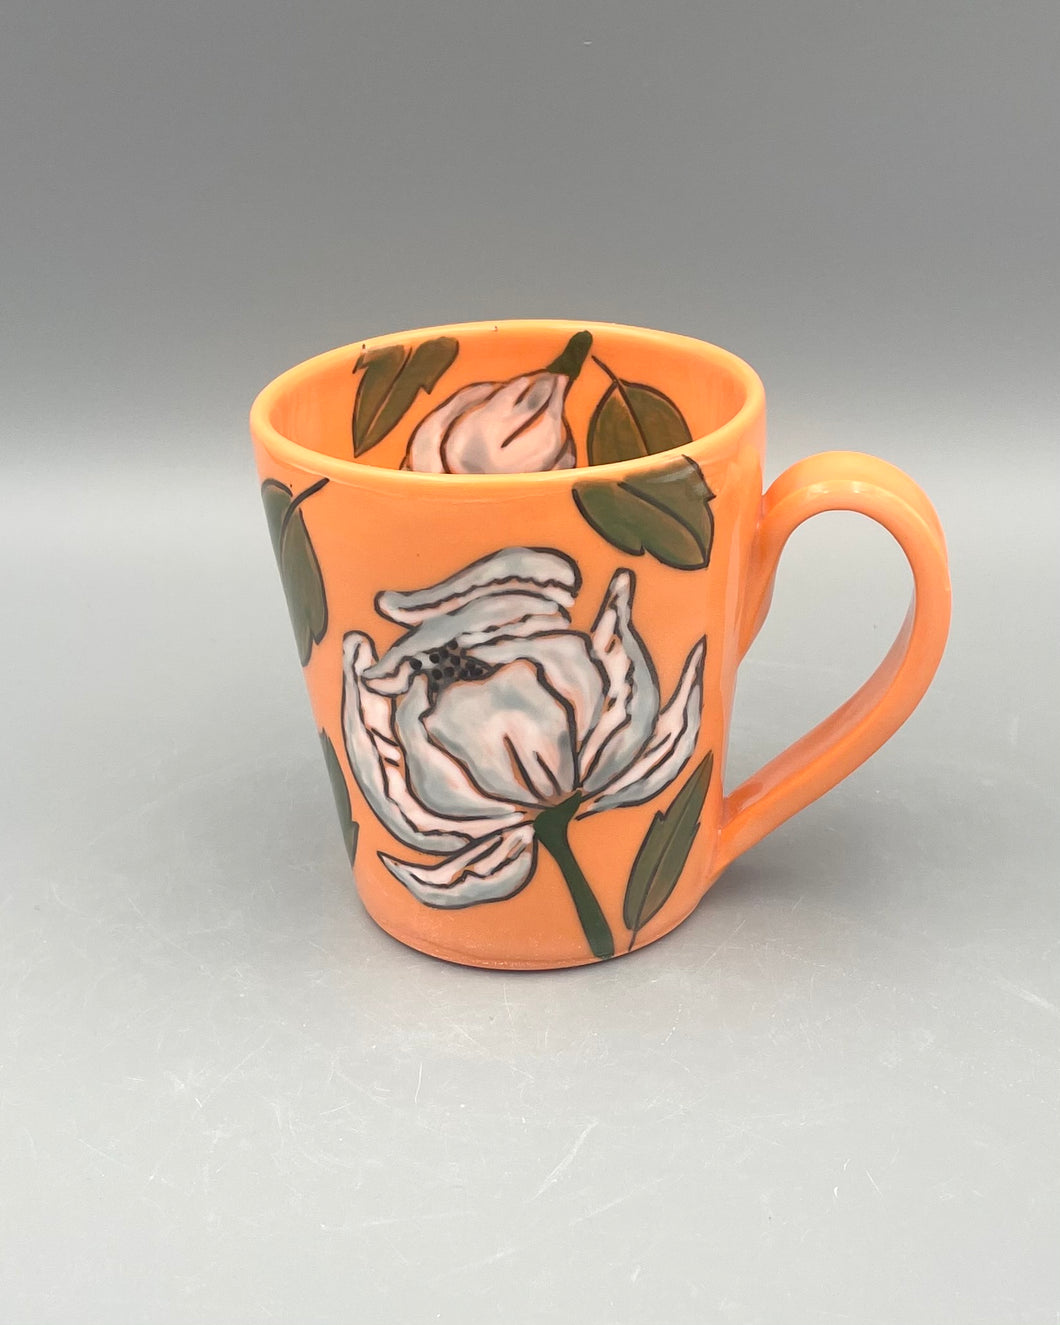 Mug (12oz) - White peonies on orange porcelain